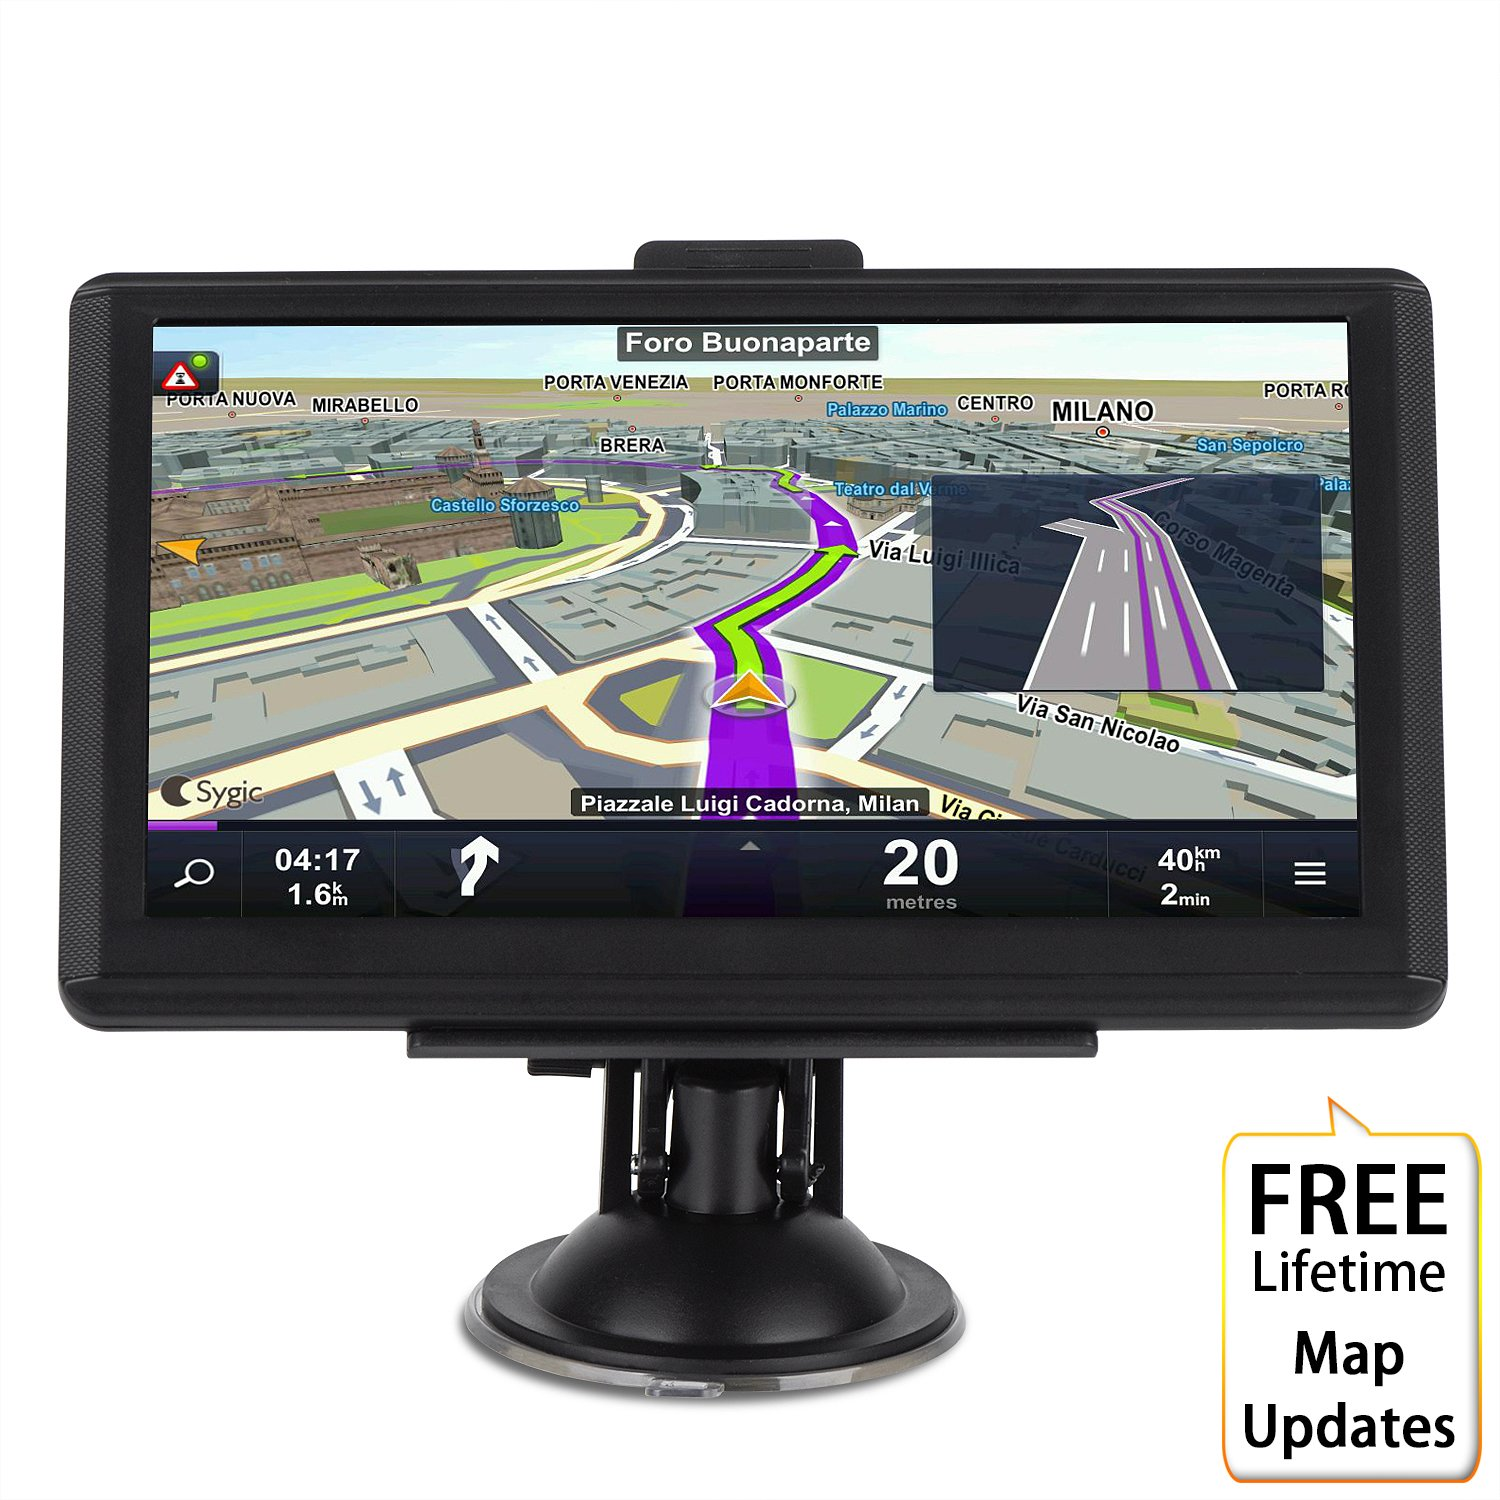 Car GPS Navigation System,GPS Navigation for car, MingAo 7 inch HD voice prompt system,GPS Navigator,Tvird Vehicle GPS Navigation with USB Cable and Car Charger,extend 8GB Memory,LIFETIME FREE Update